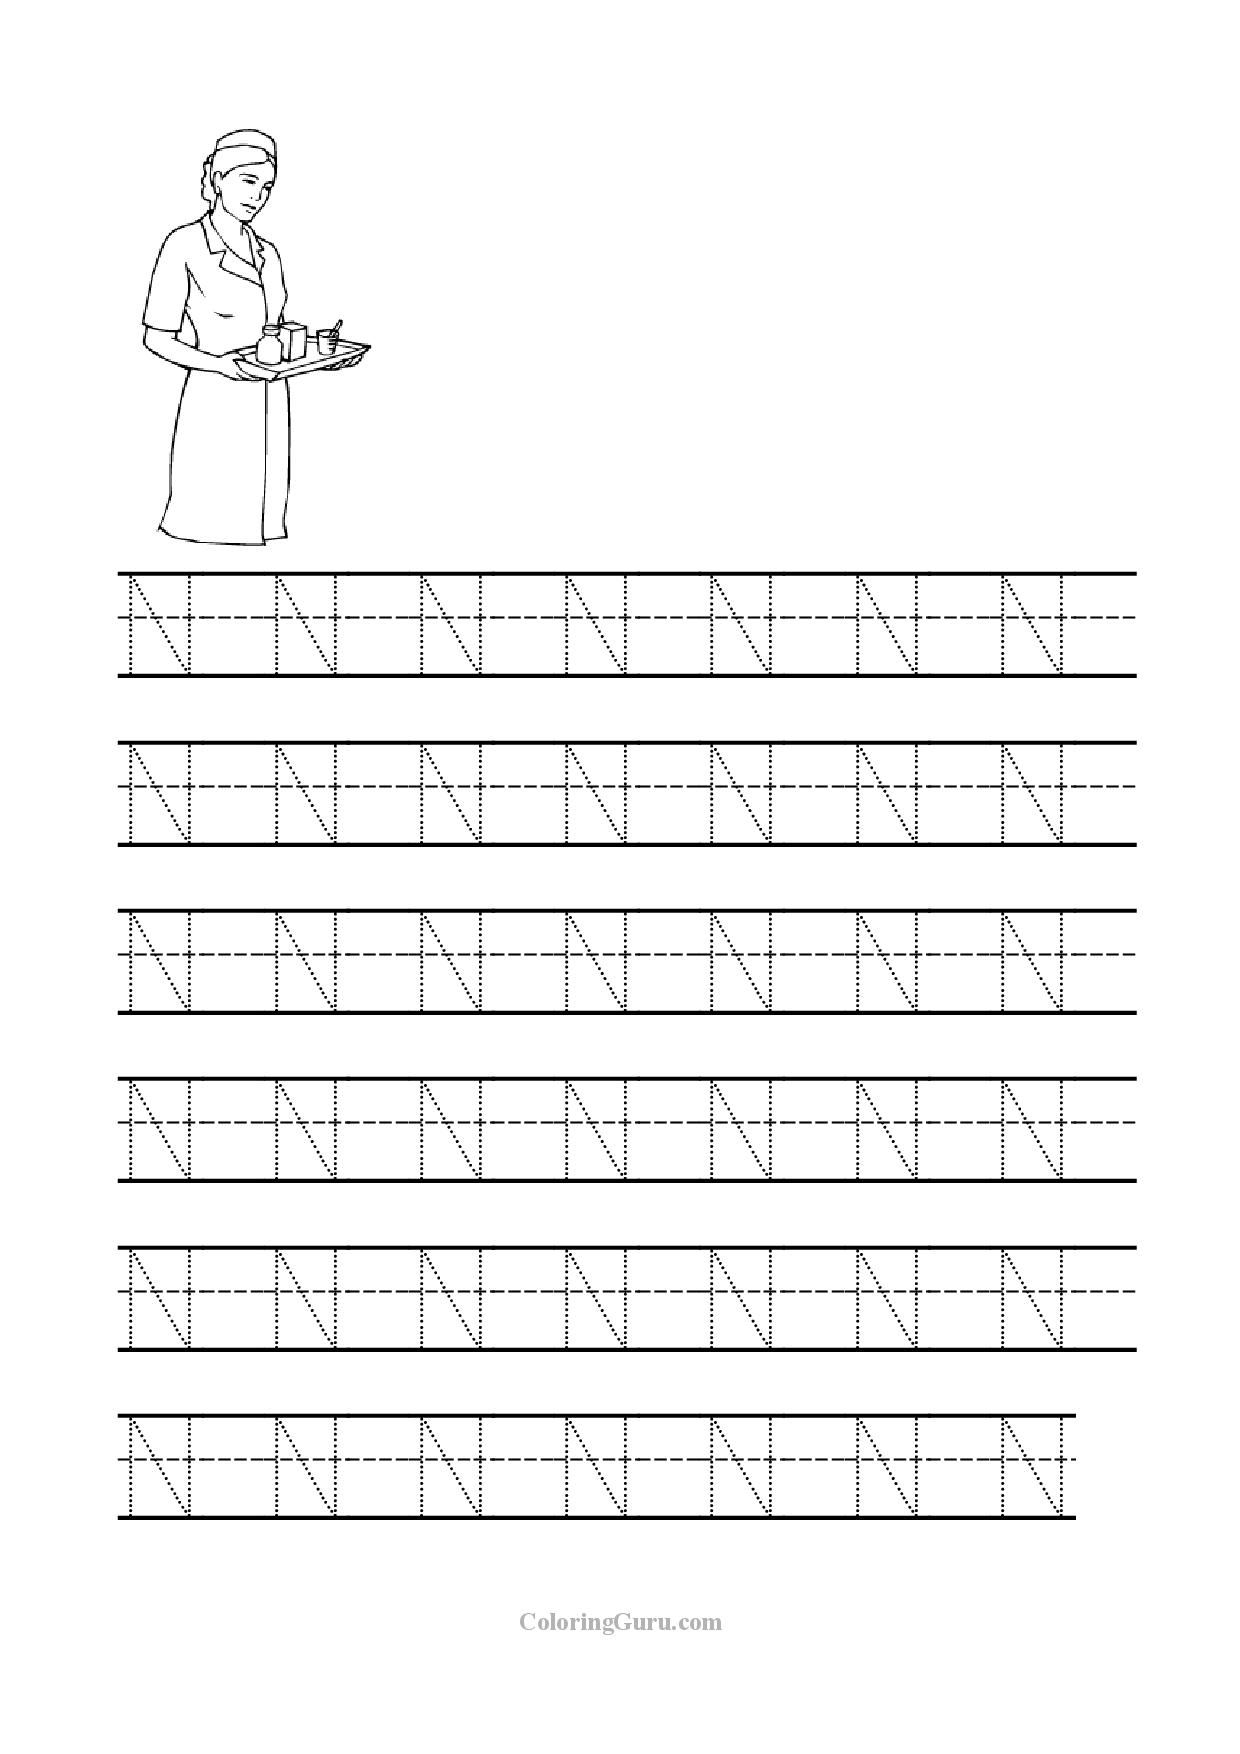 Free Printable Tracing Letter N Worksheets For Preschool with Letter N Tracing Page